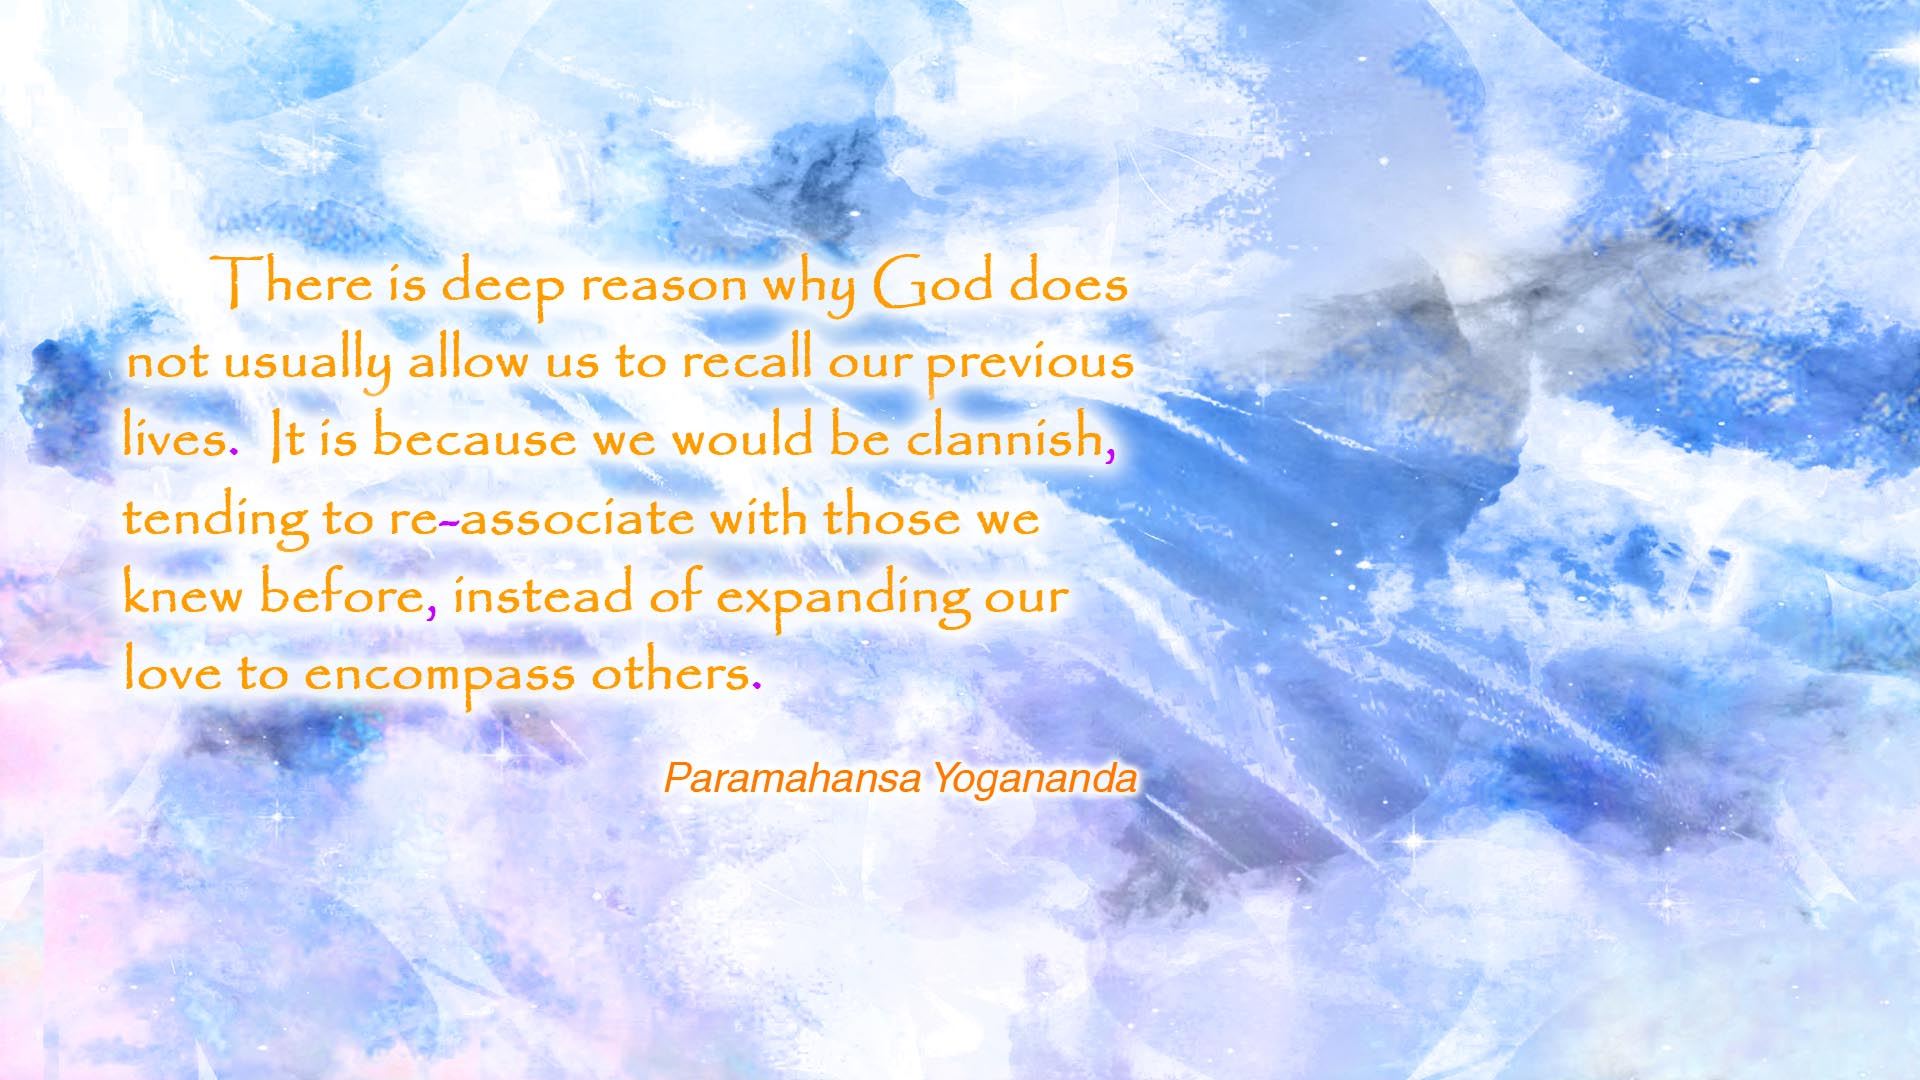 Yogananda recall lives wallpaper